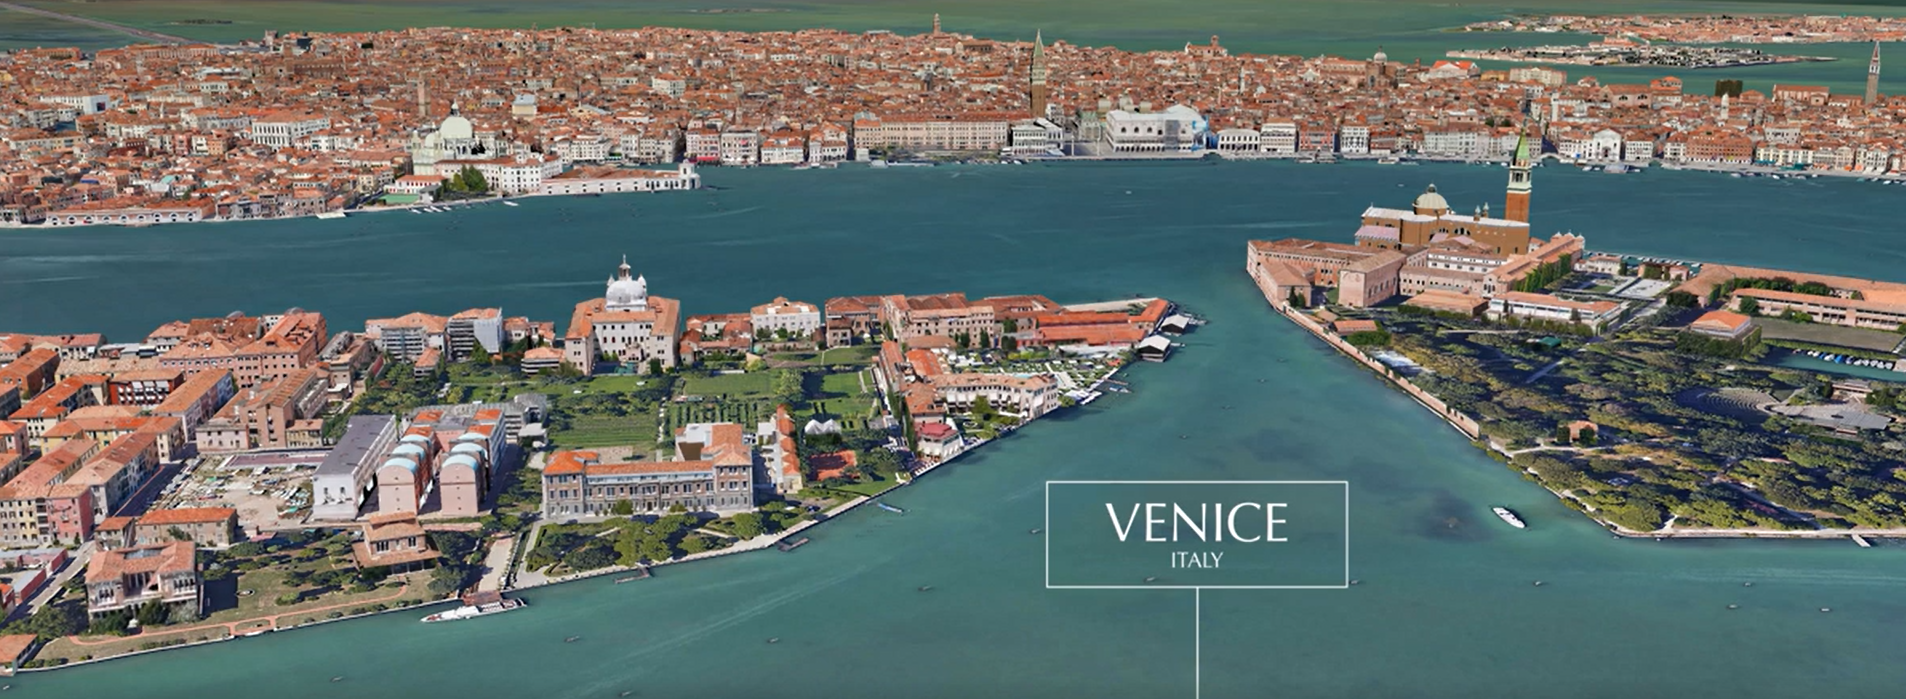 Google maps preview of venice